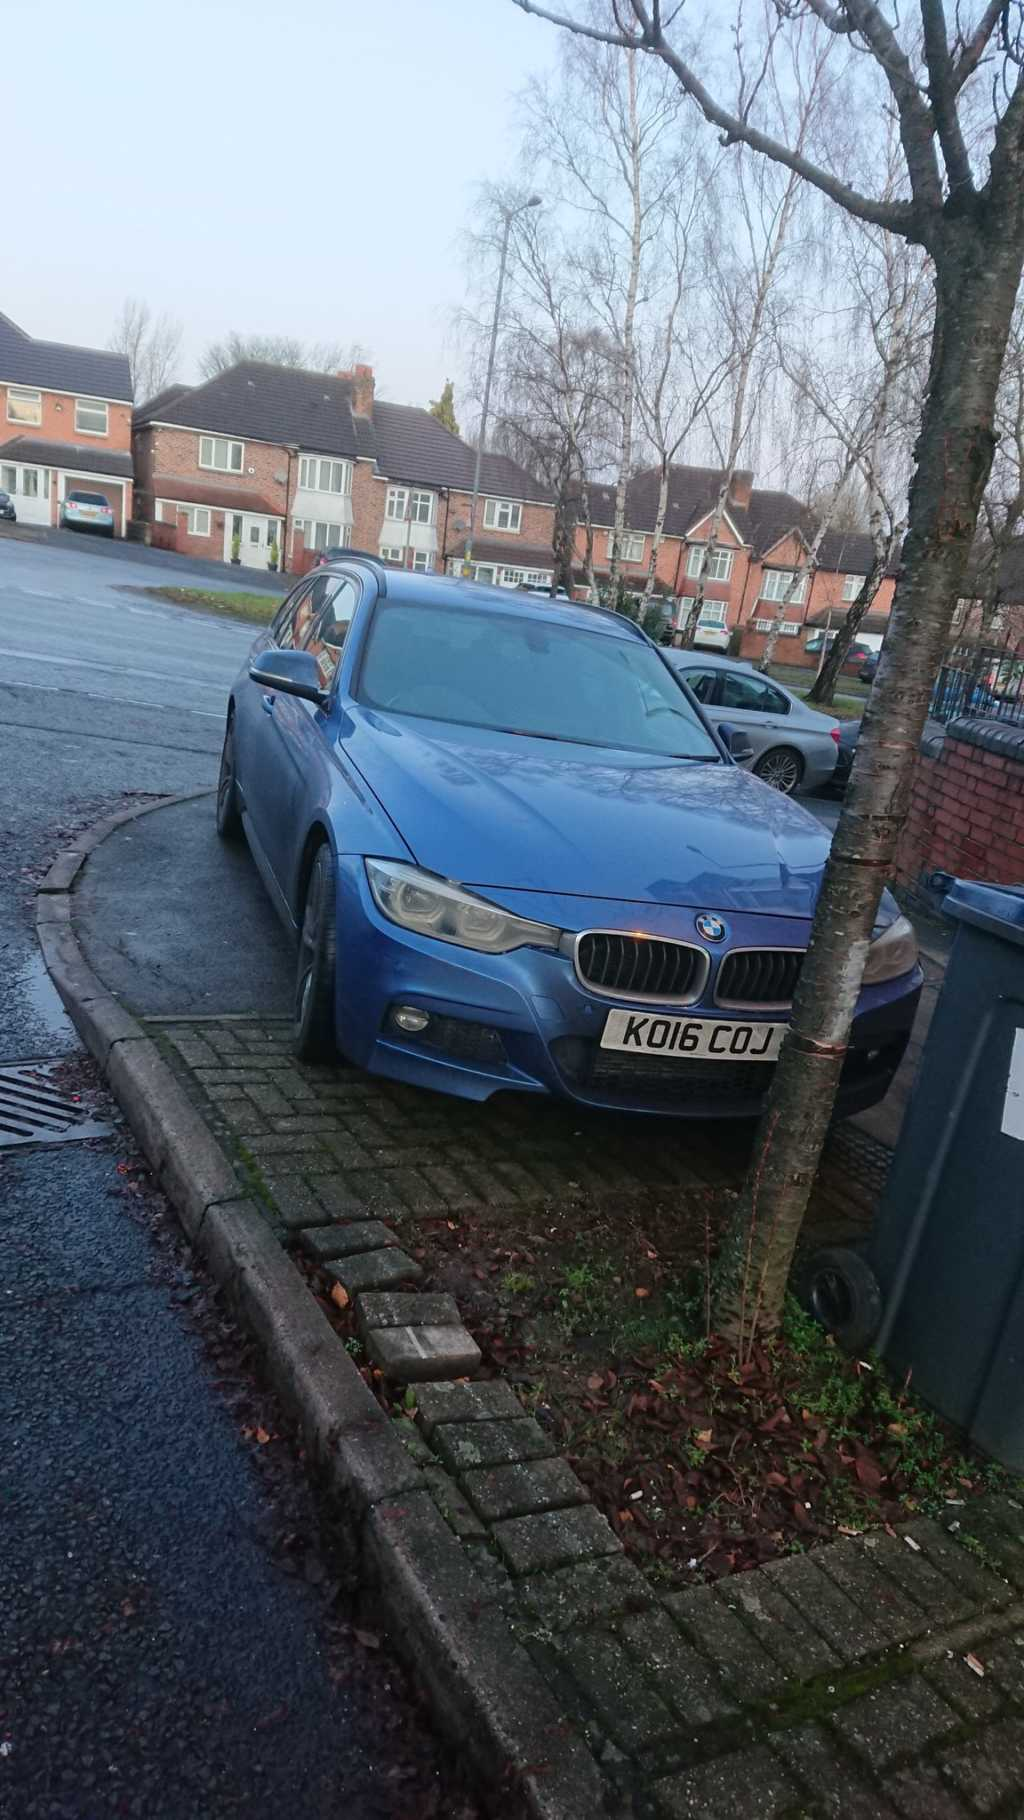 KO16 COJ displaying Inconsiderate Parking